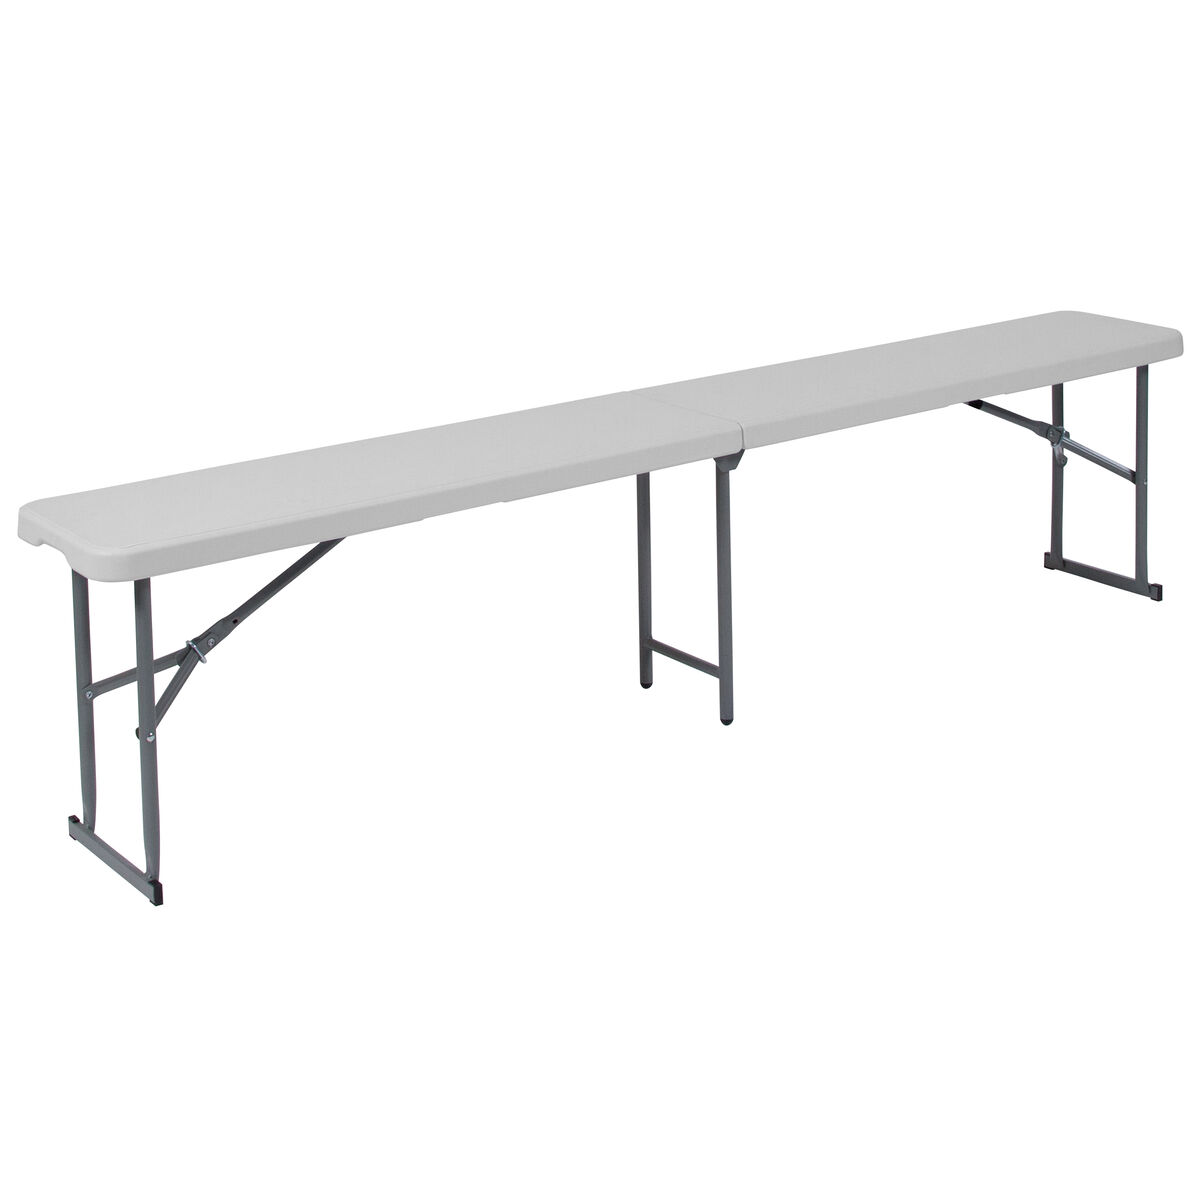 10 25x71 White Folding Bench Rb 1172fh Gg Schoolfurniture4less Com